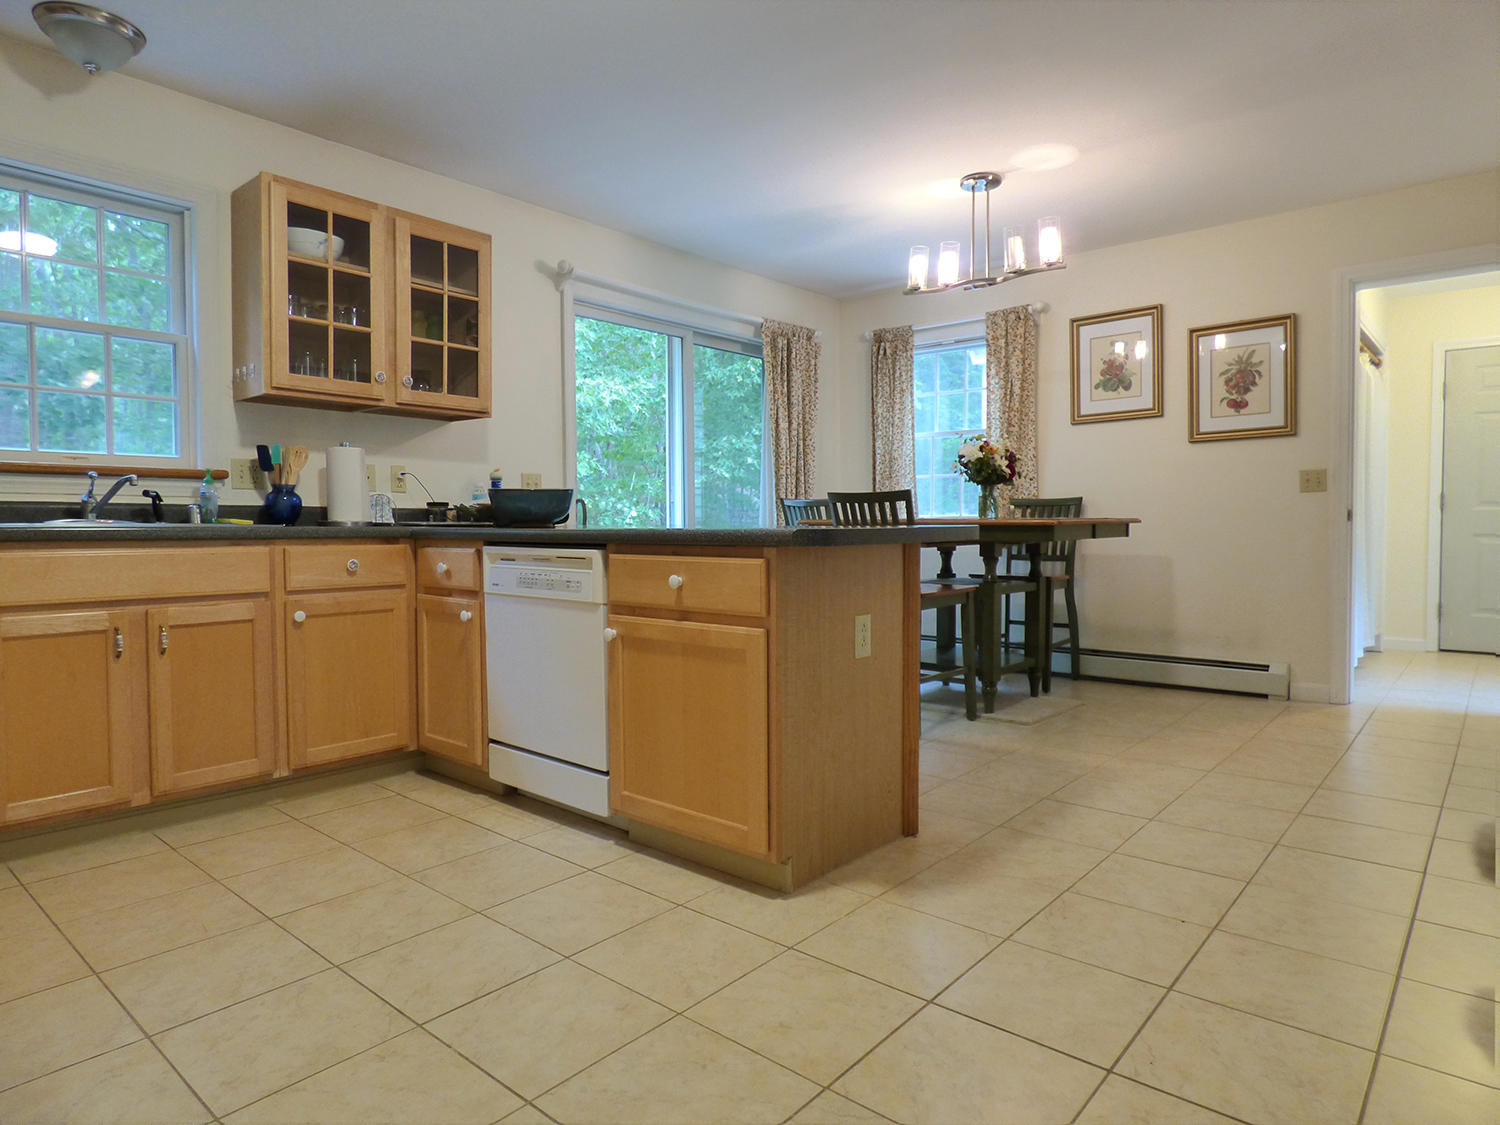 Kitchen and Dining Area 2